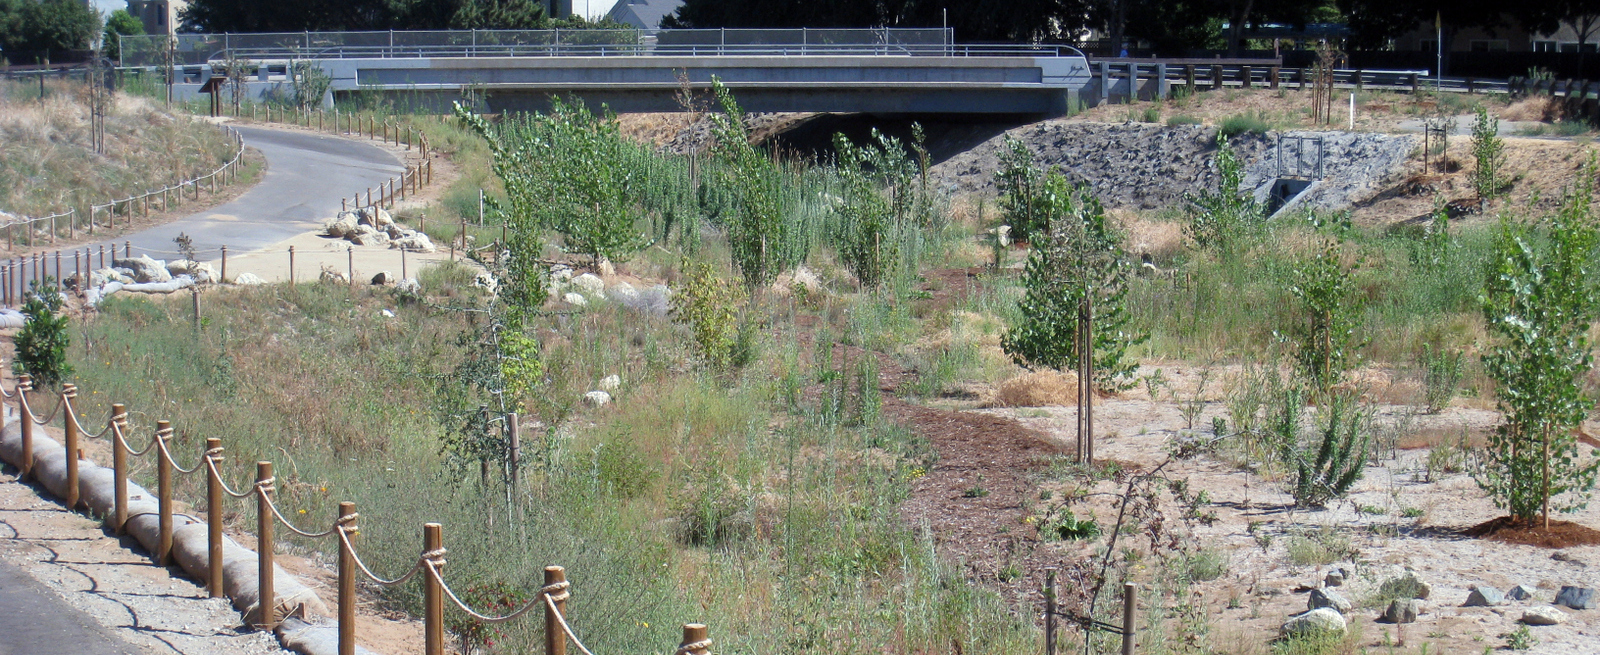 Marsh Creek Restoration, City of Oakley